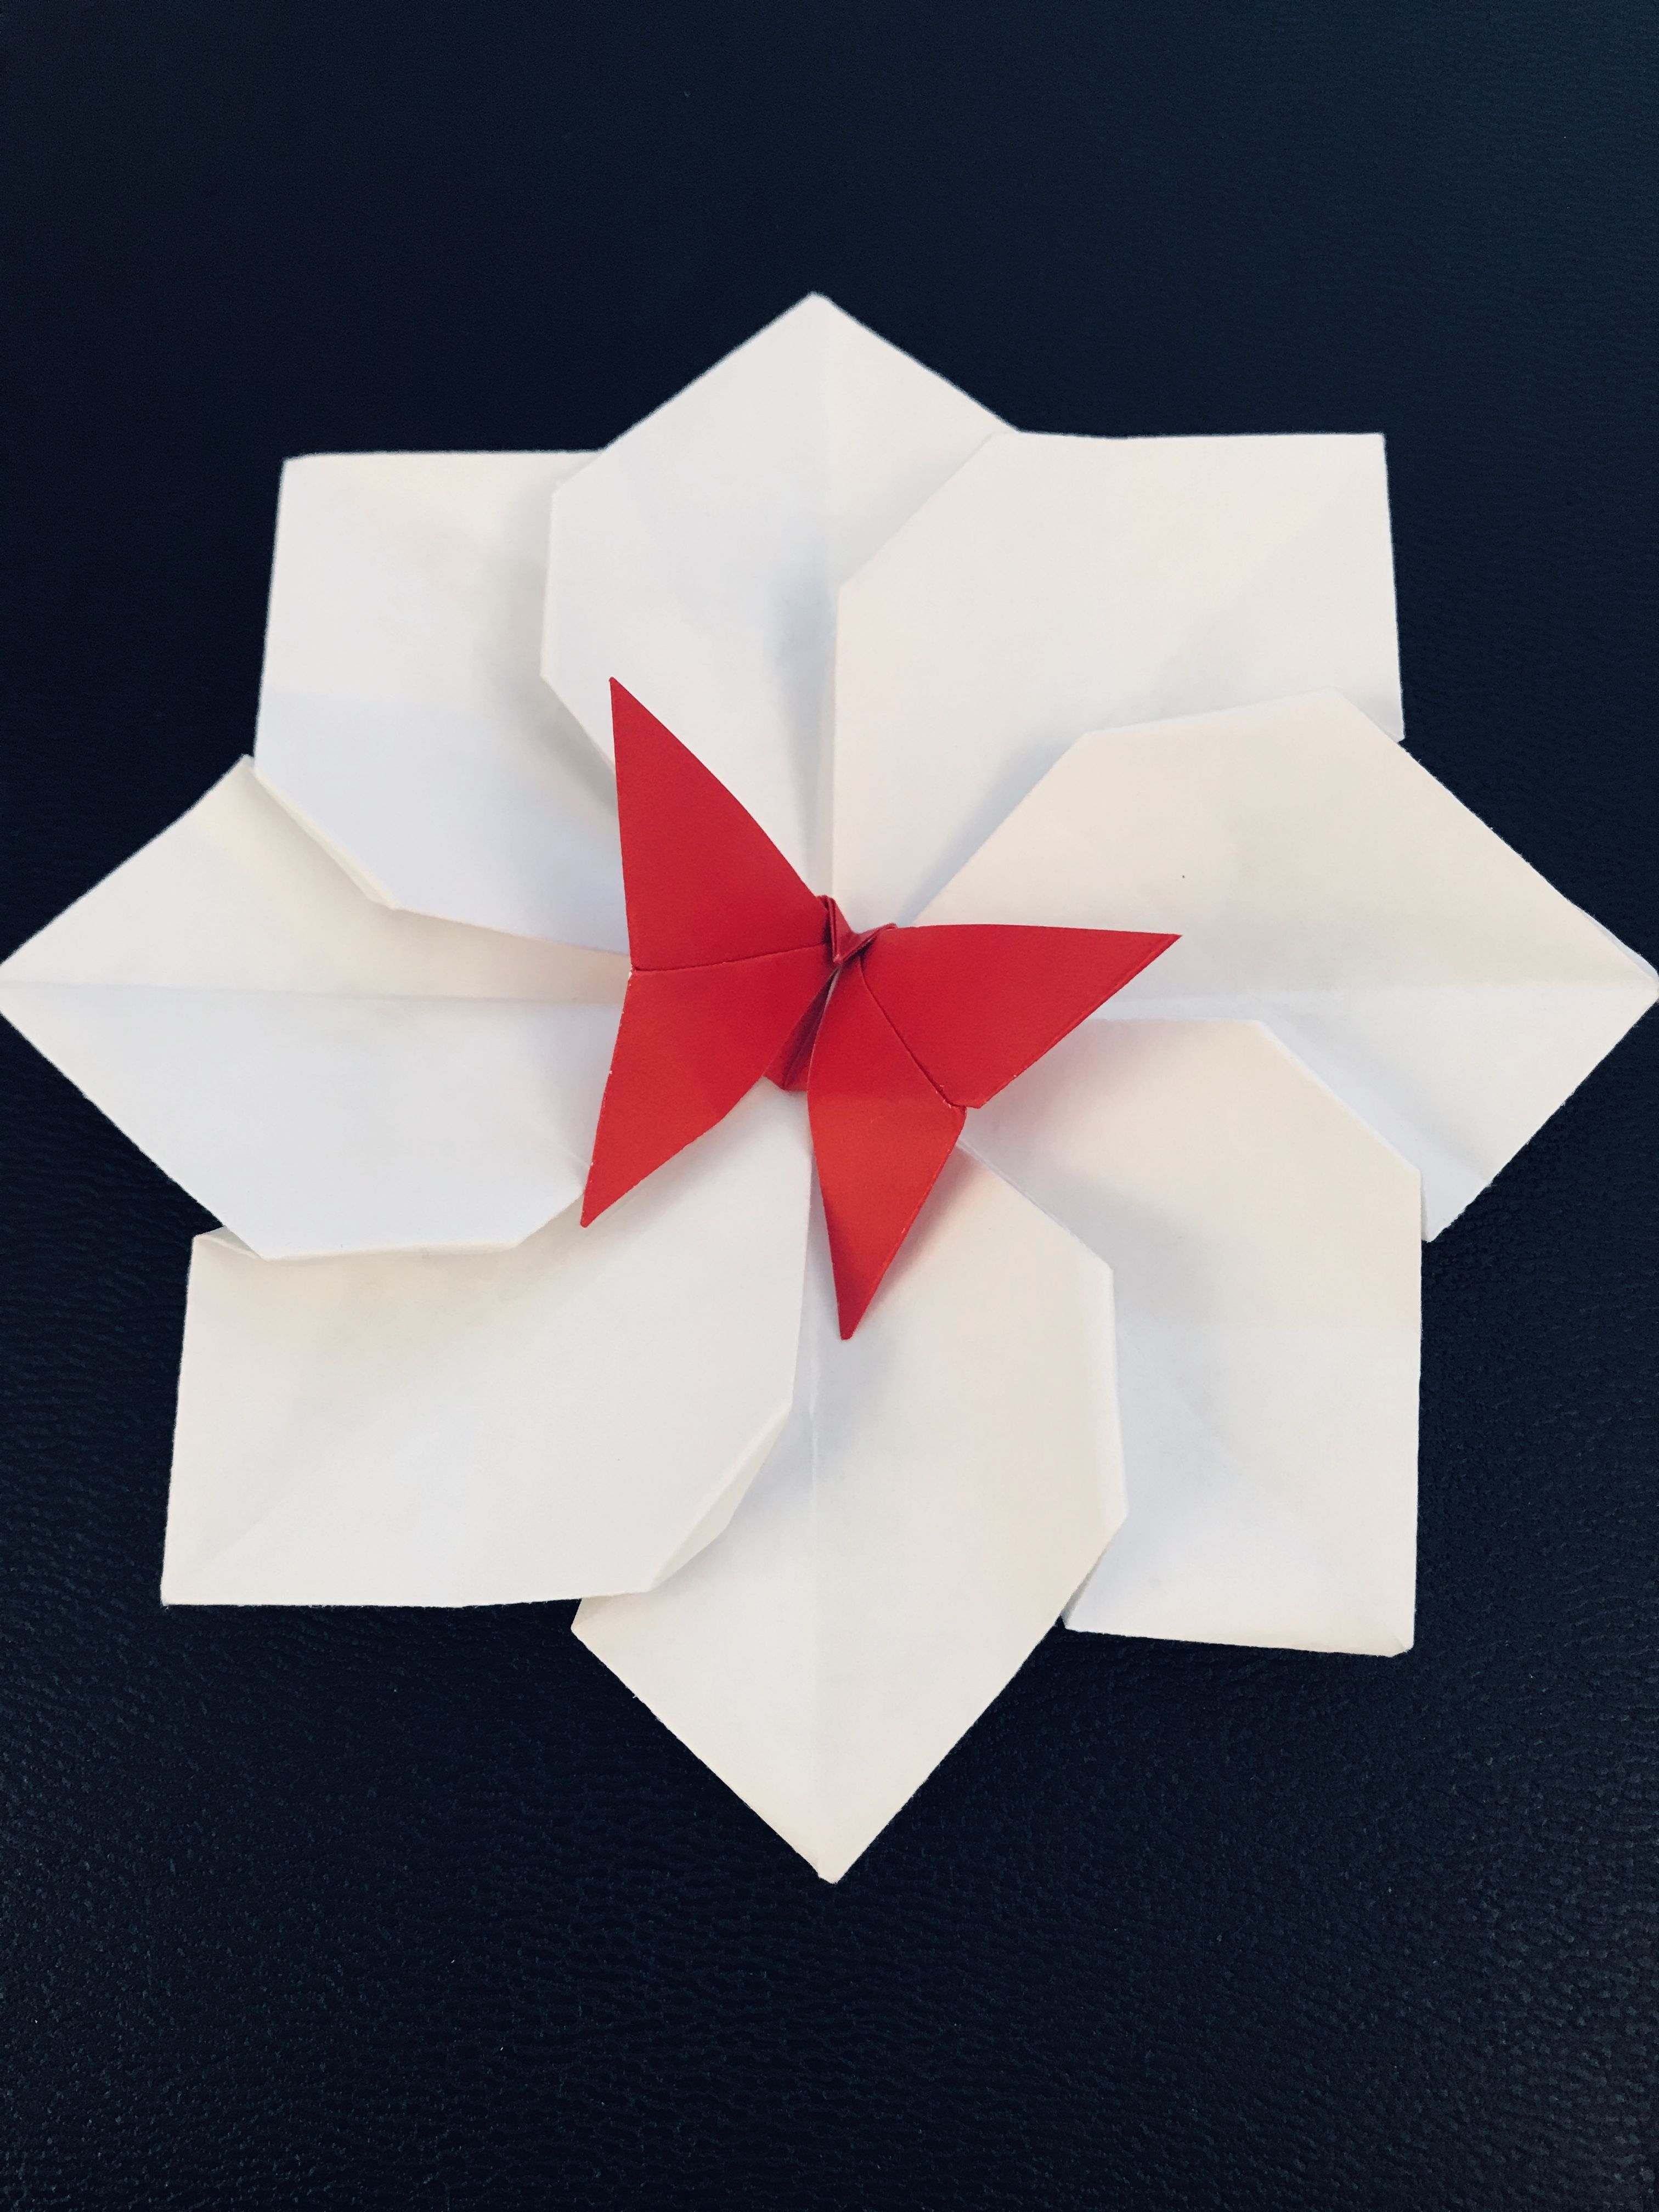 Origami Lotus Flower With Red Butterfly For Good Luck Origami Lotusbloem